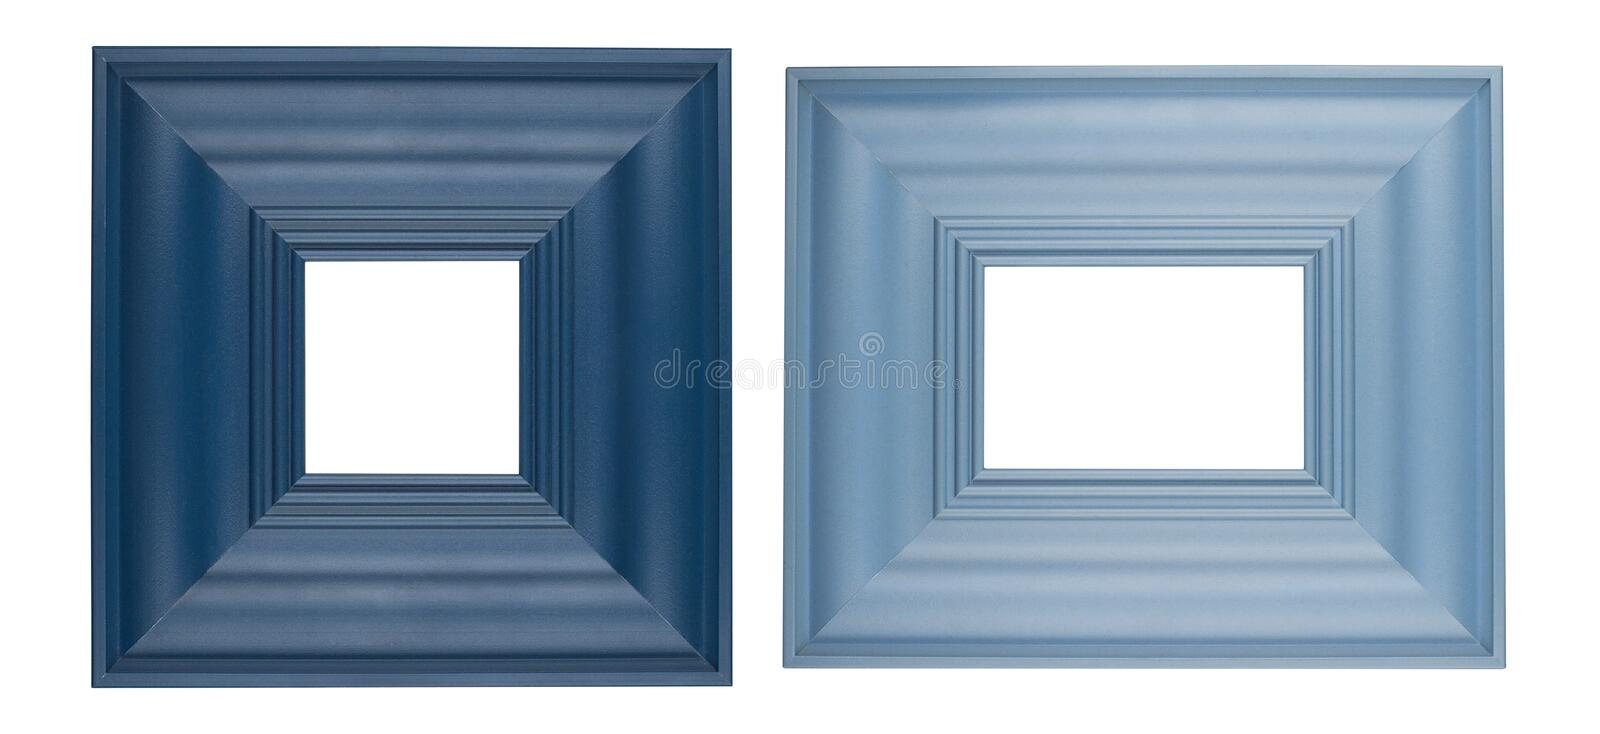 Two blue square picture frames stock photography